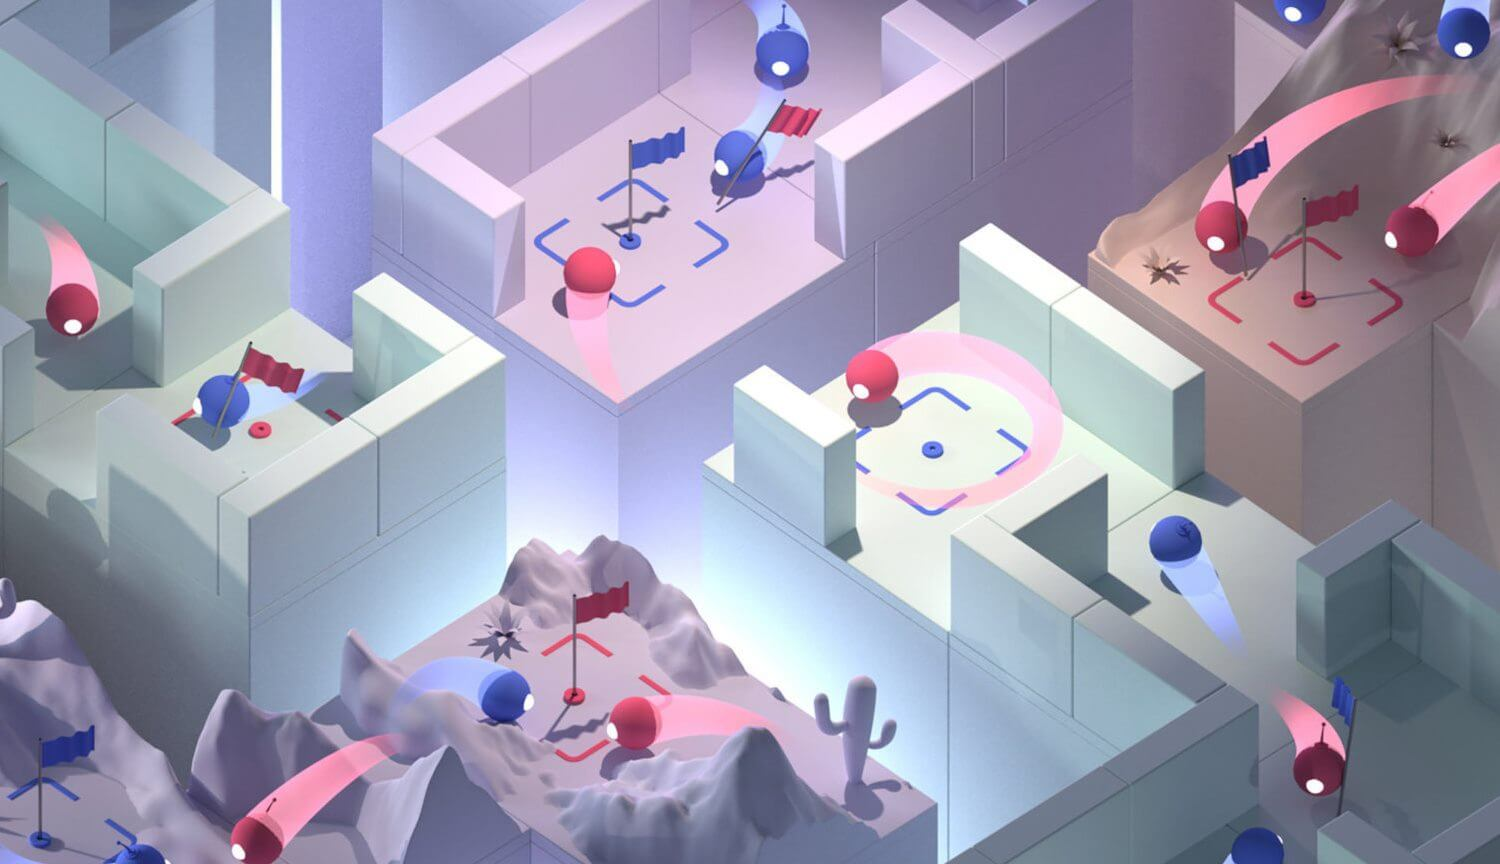 Artificial intelligence DeepMind beat people at Quake III Arena